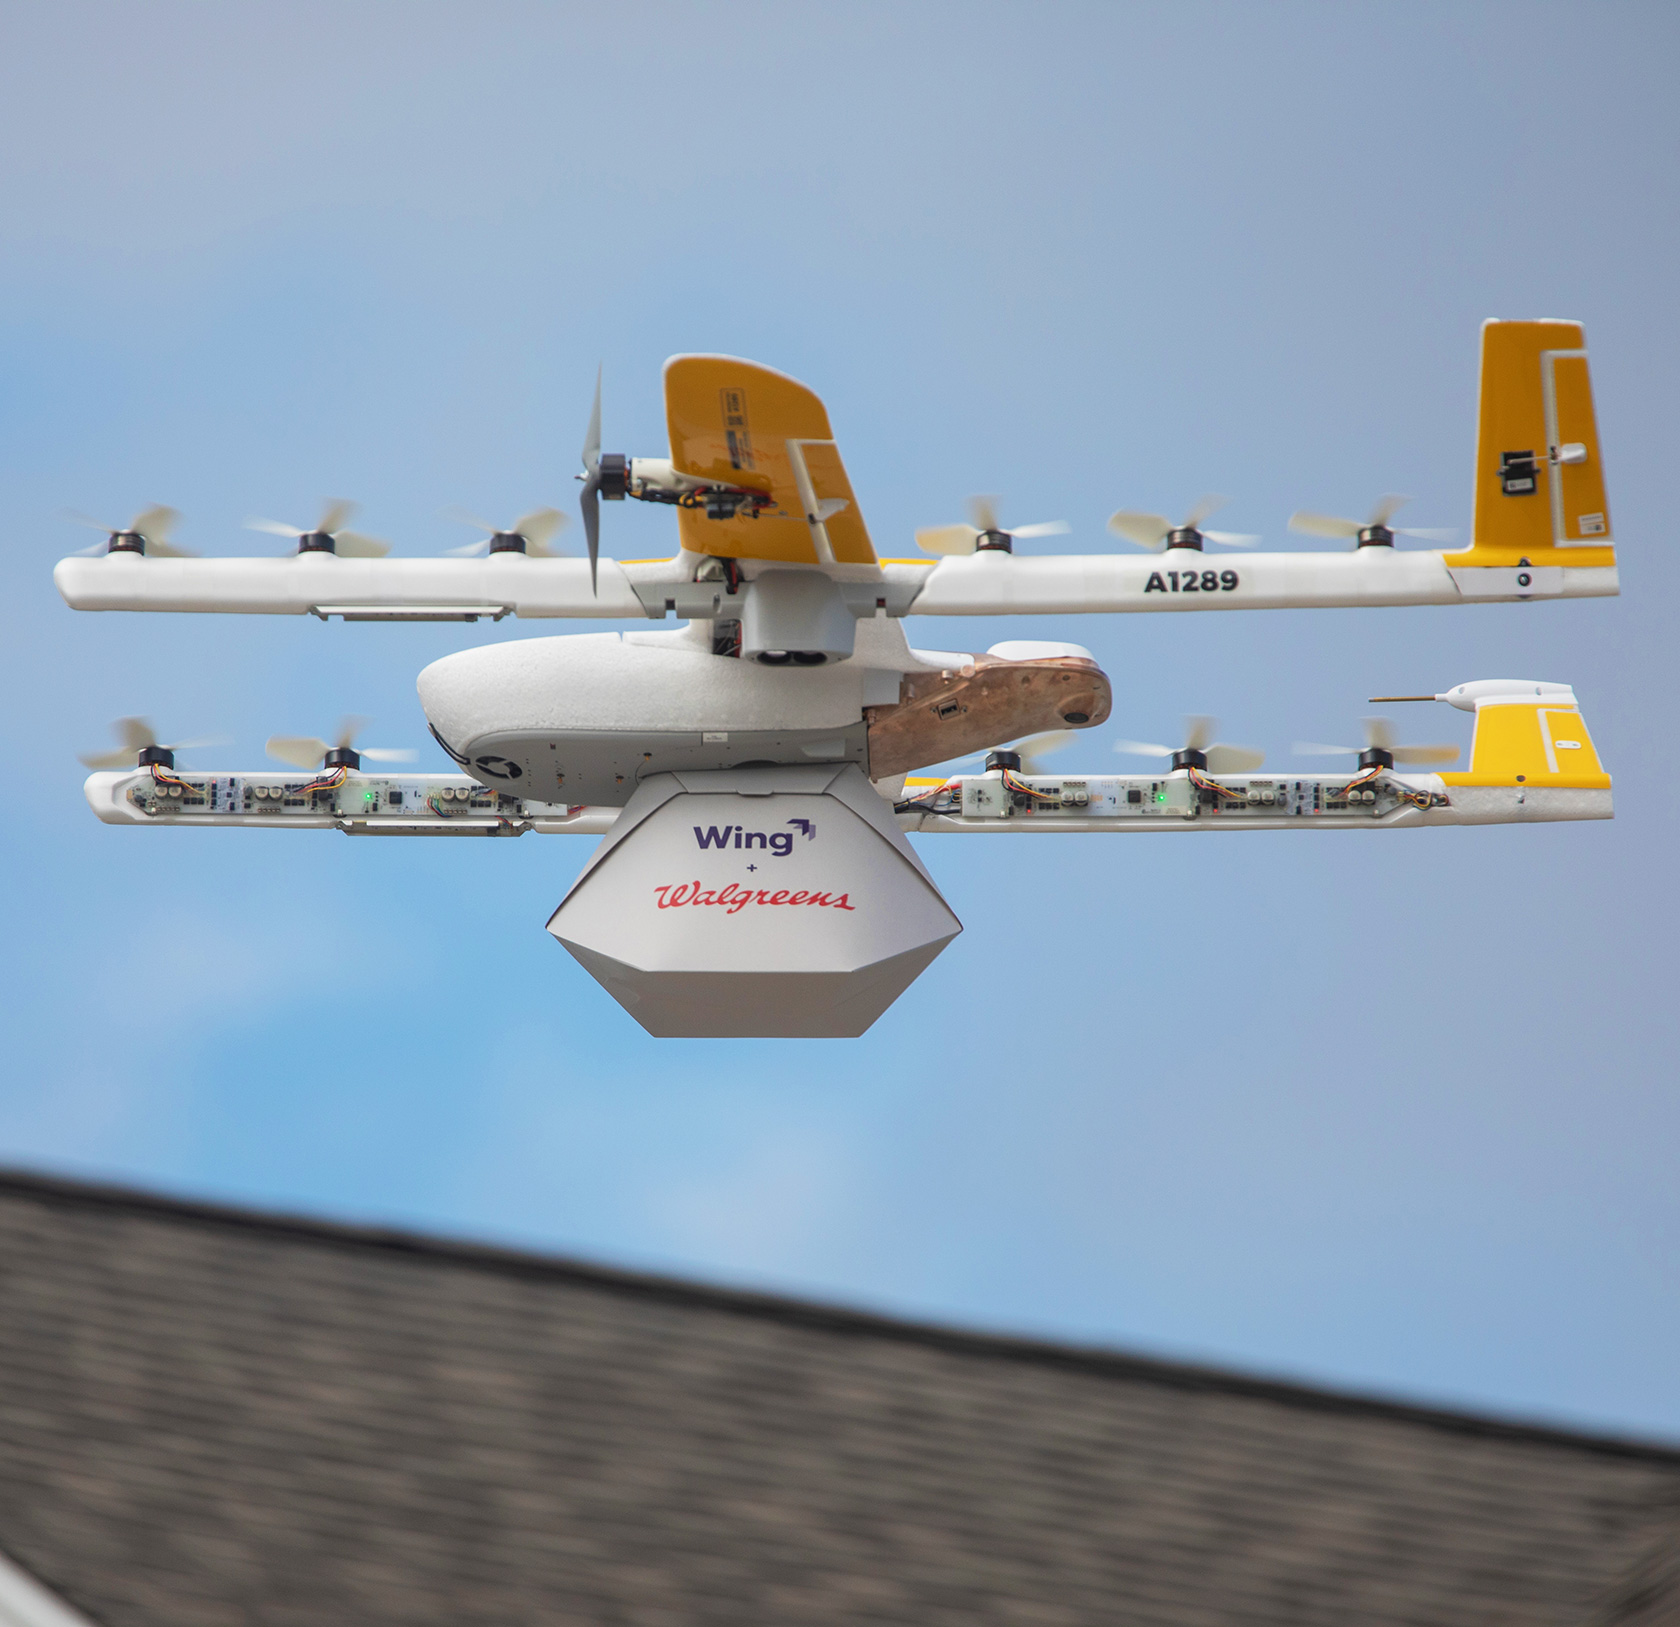 Wing Drone Delivery Service